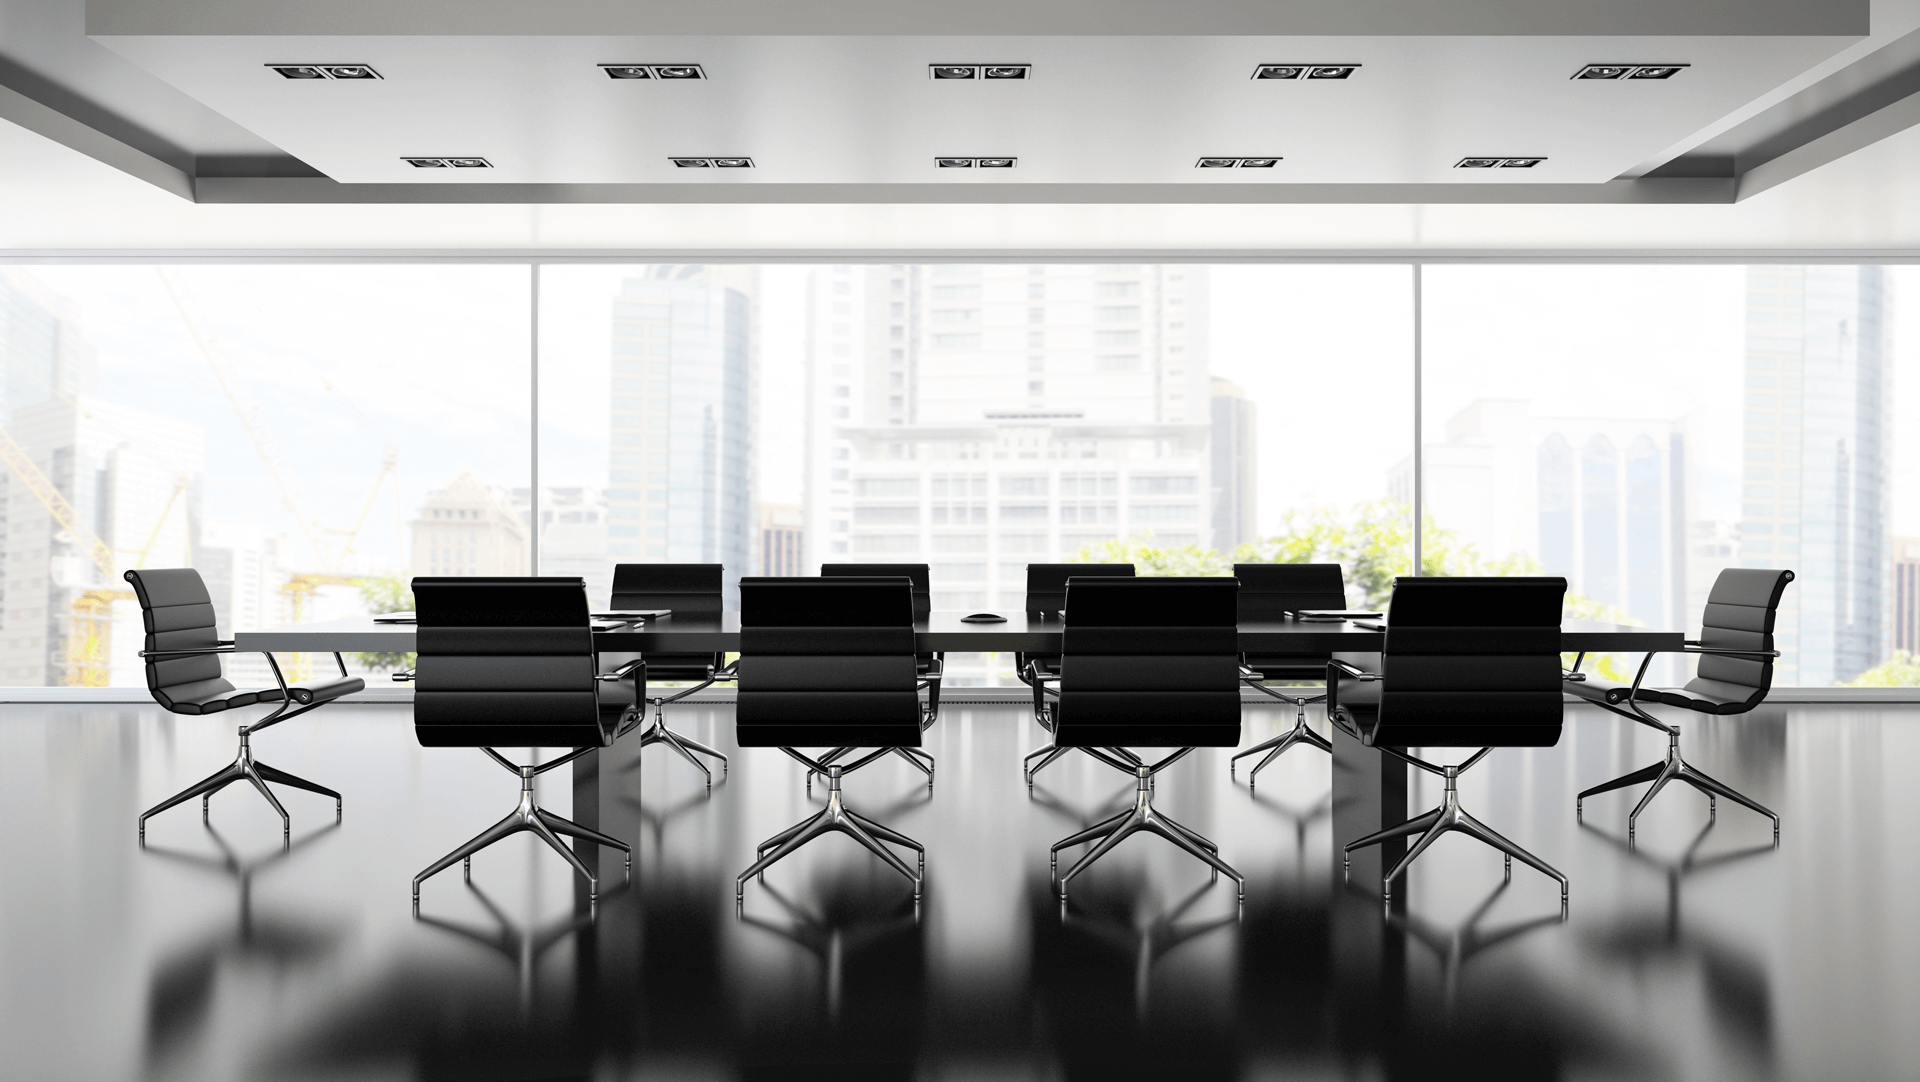 architectural chairs modern conference room beautiful landscape